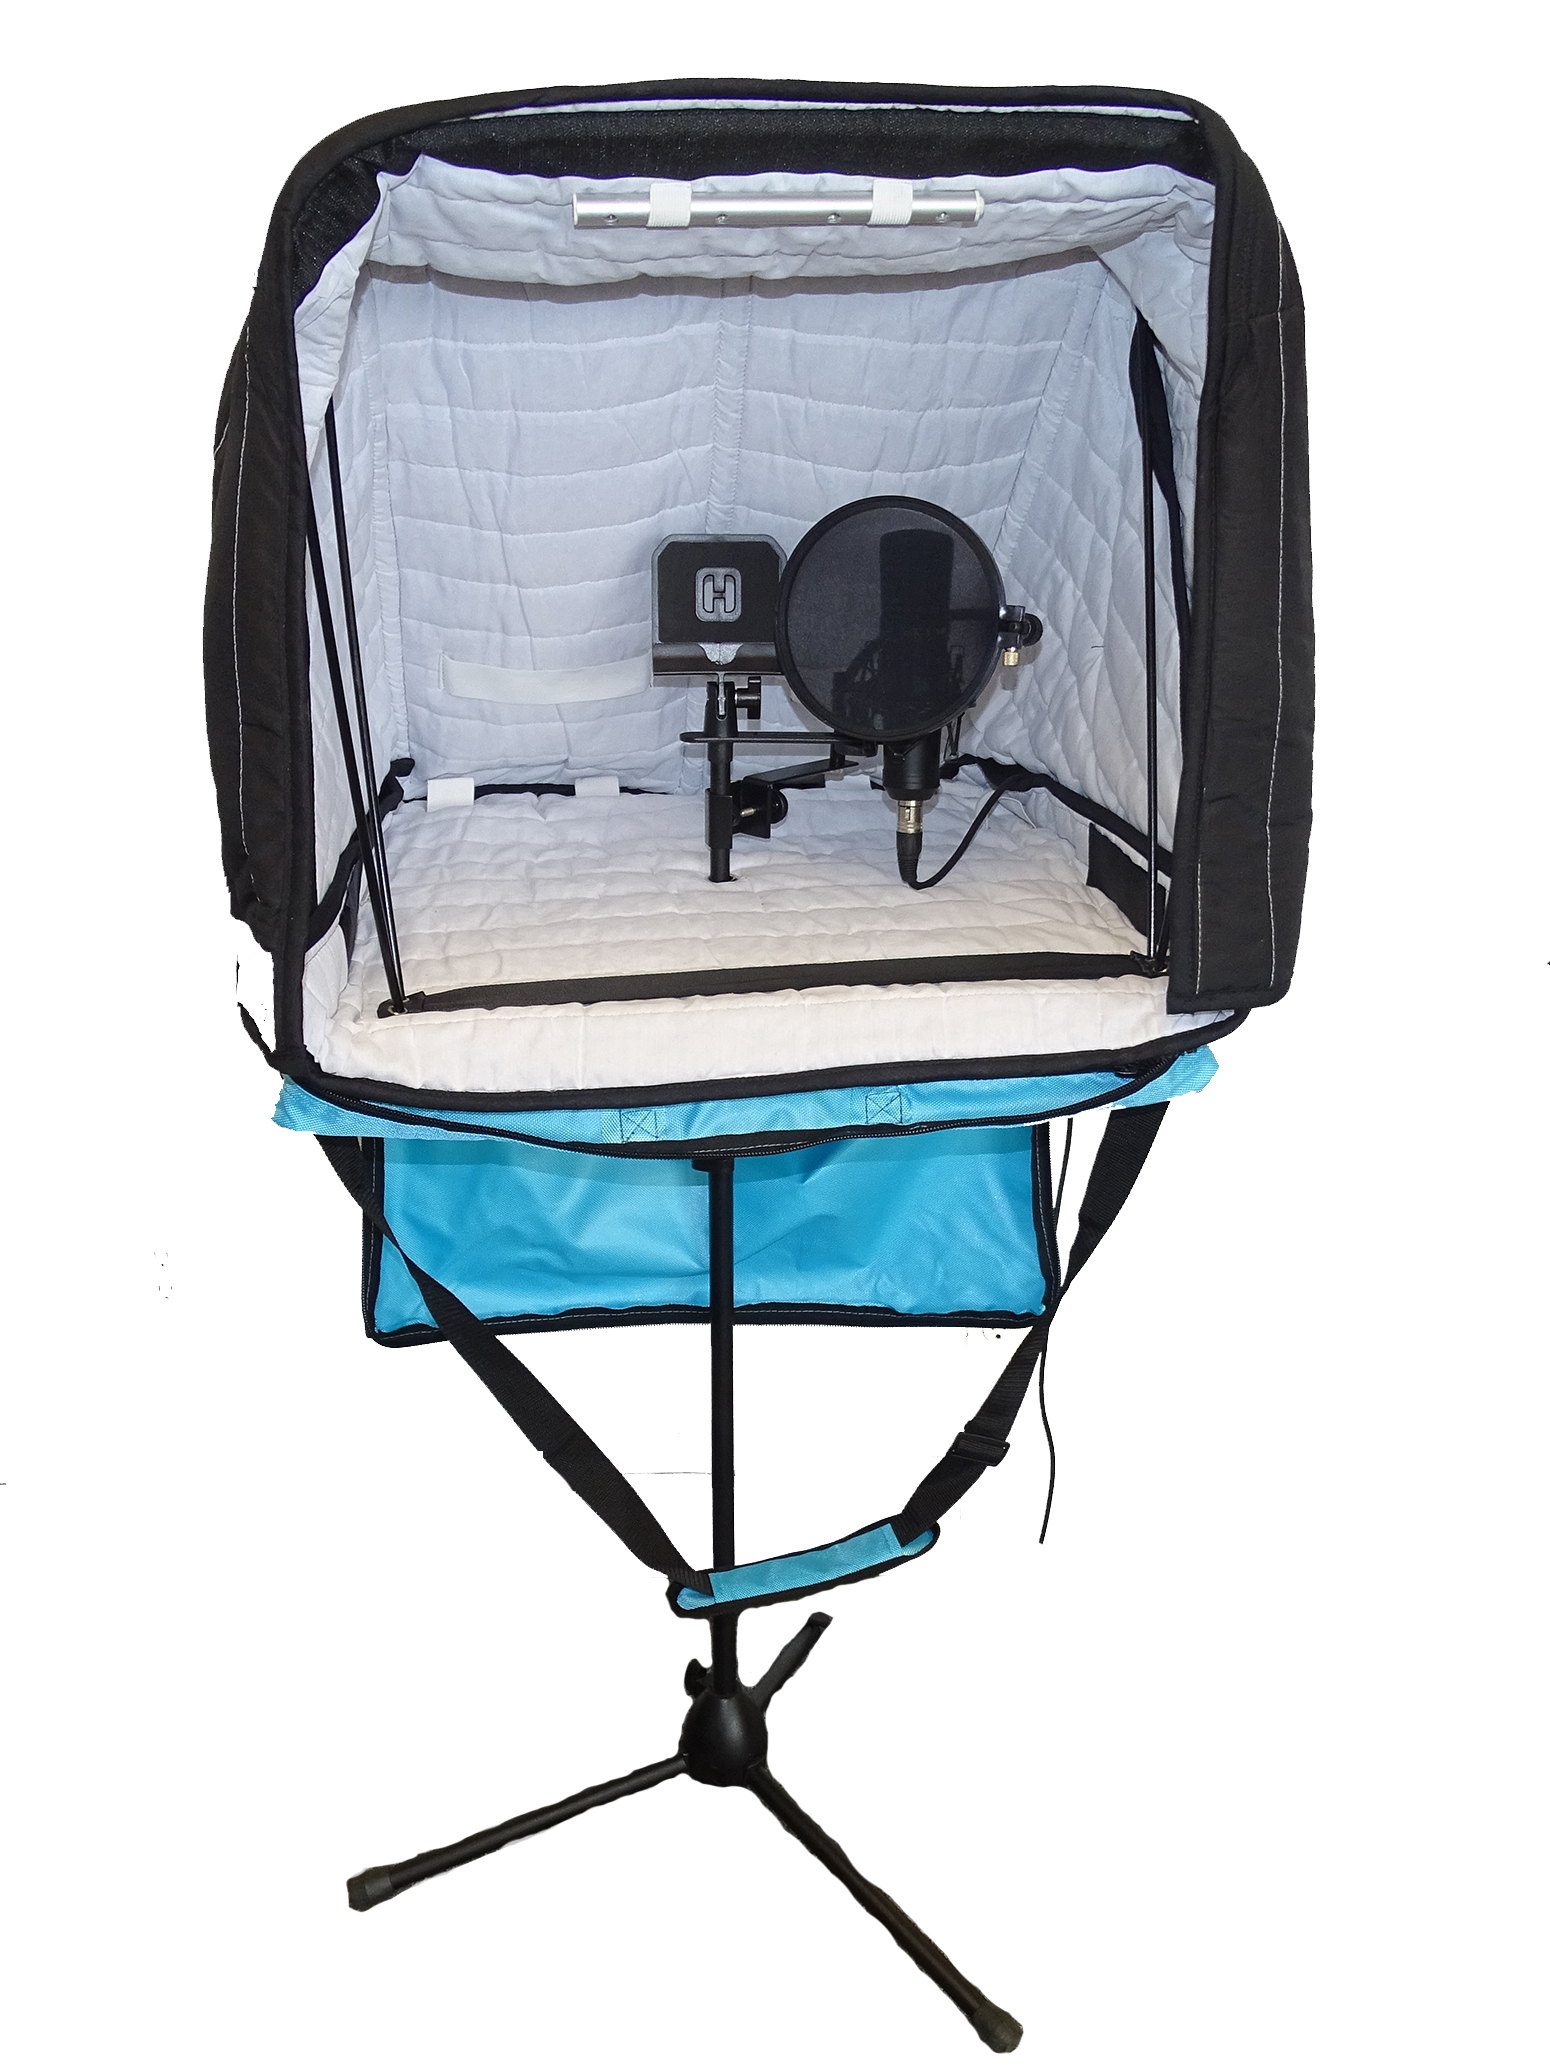 ... maker of Portable Vocal Booth, Acoustic sound blankets Producer Choice